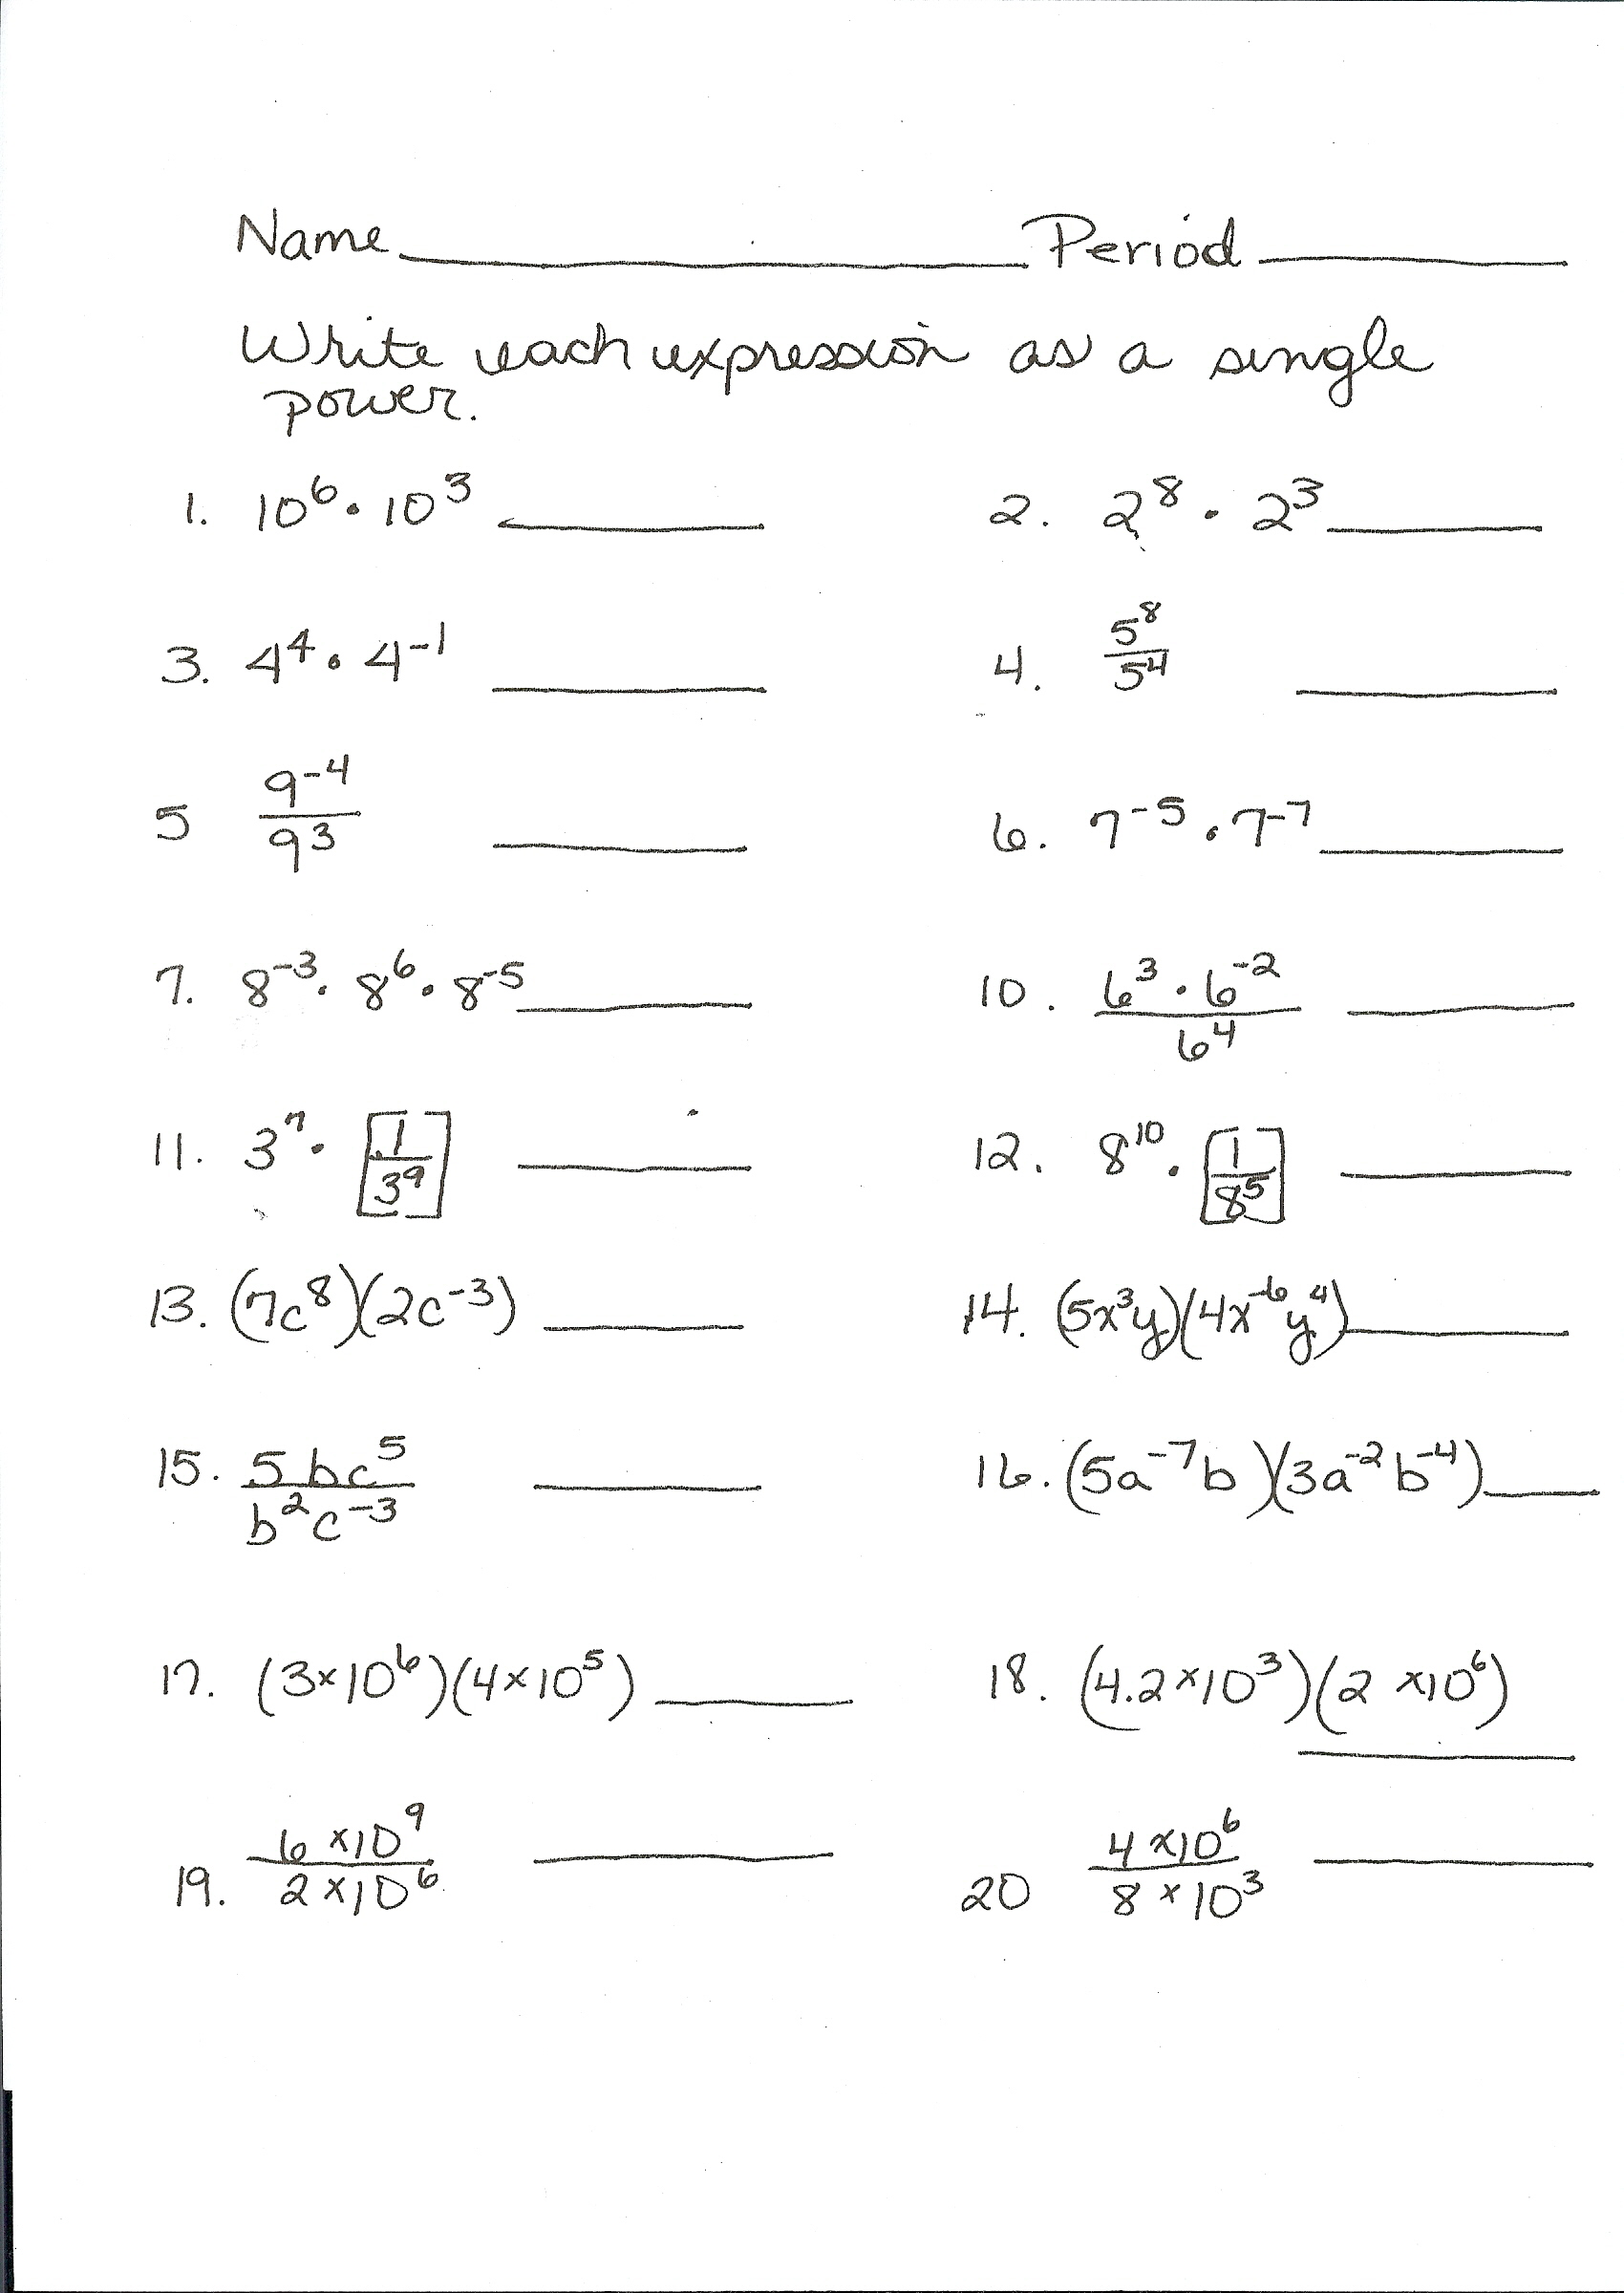 Printables 3rd Grade Math Staar Test Practice Worksheets wisniewski boyd welcome exponent practice page 1 and 2 math 8 only activity sheet review staar all 10 staar